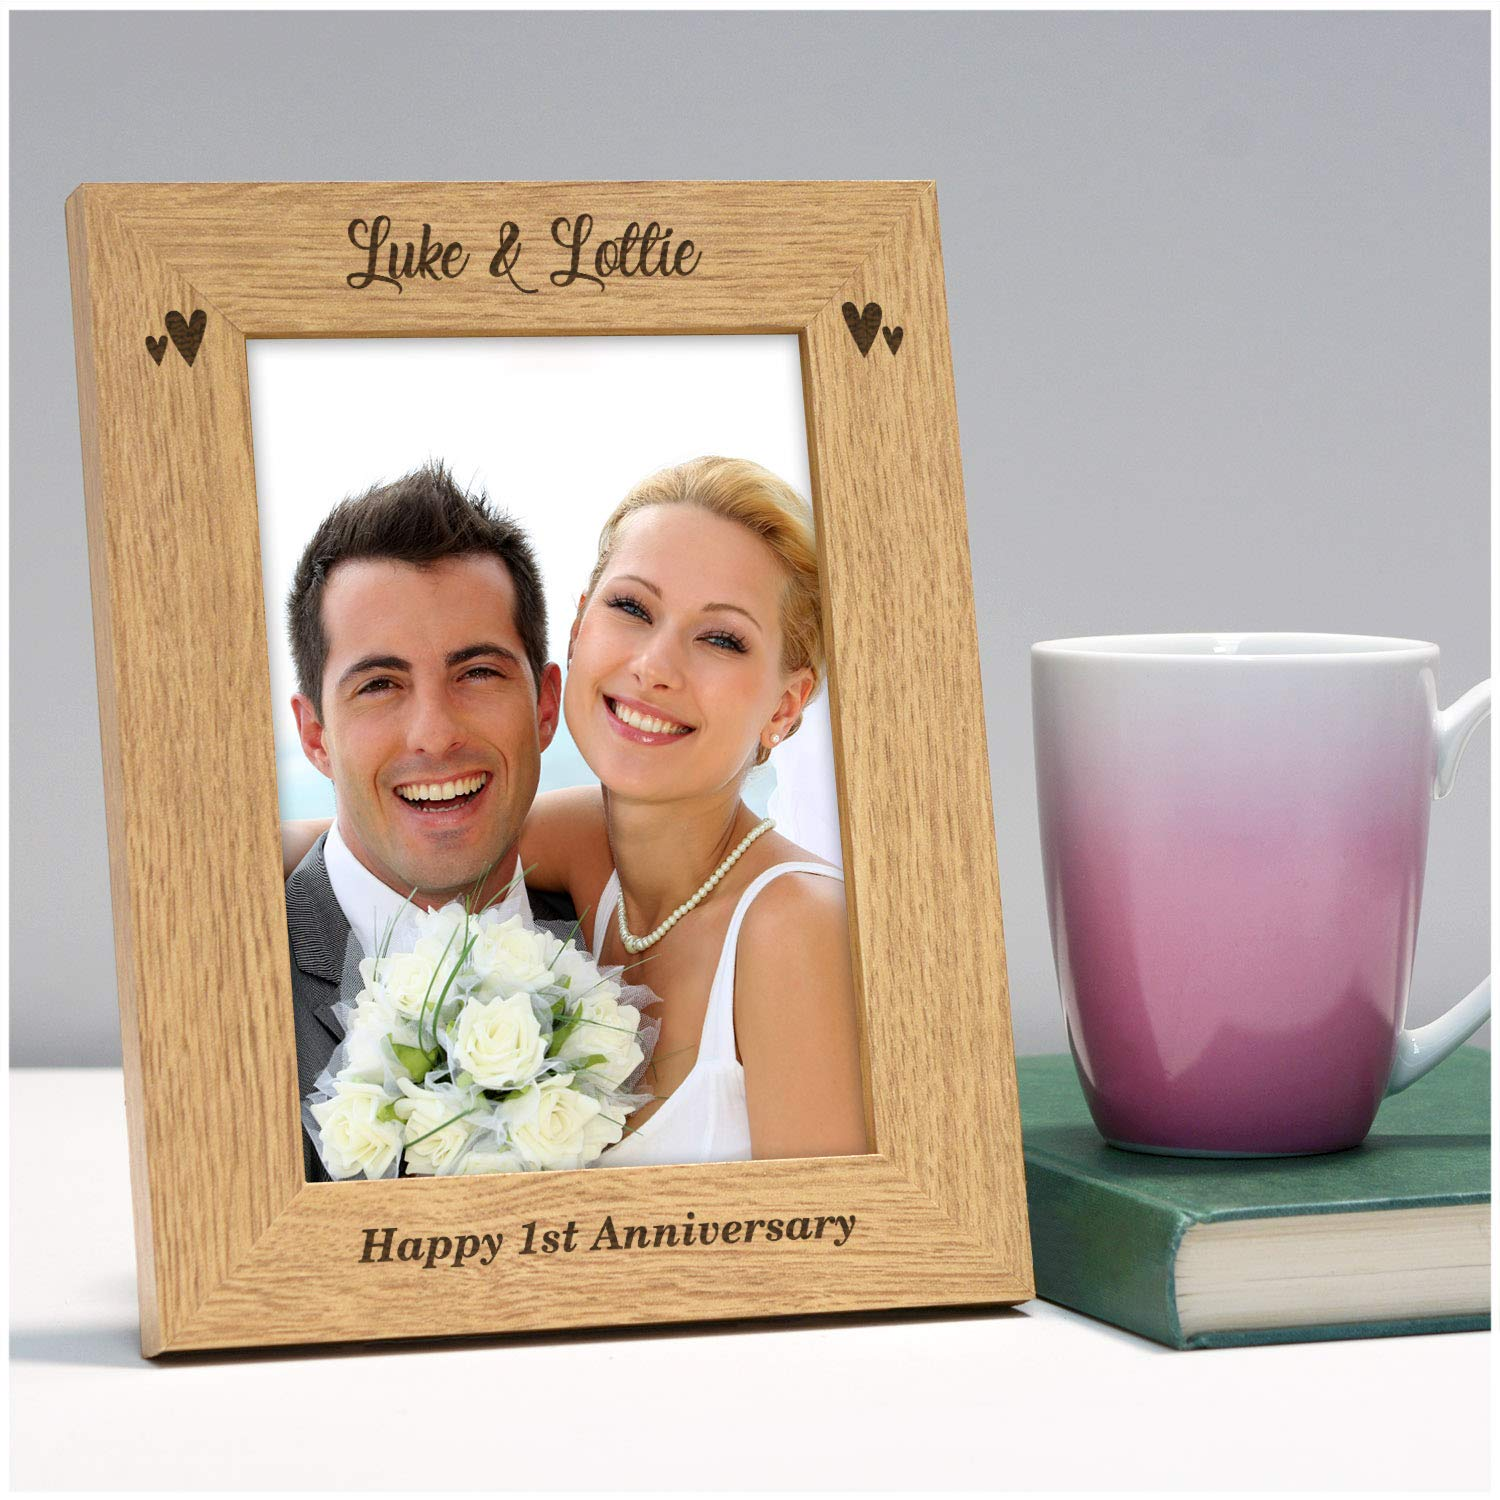 25th 1st 5th Engraved Wooden Anniversary Picture Frame Gifts for Couples Personalised Happy 1st Anniversary Photo Frame Gifts 50th ANY Anniversary Husband 10th 40th Wife 30th